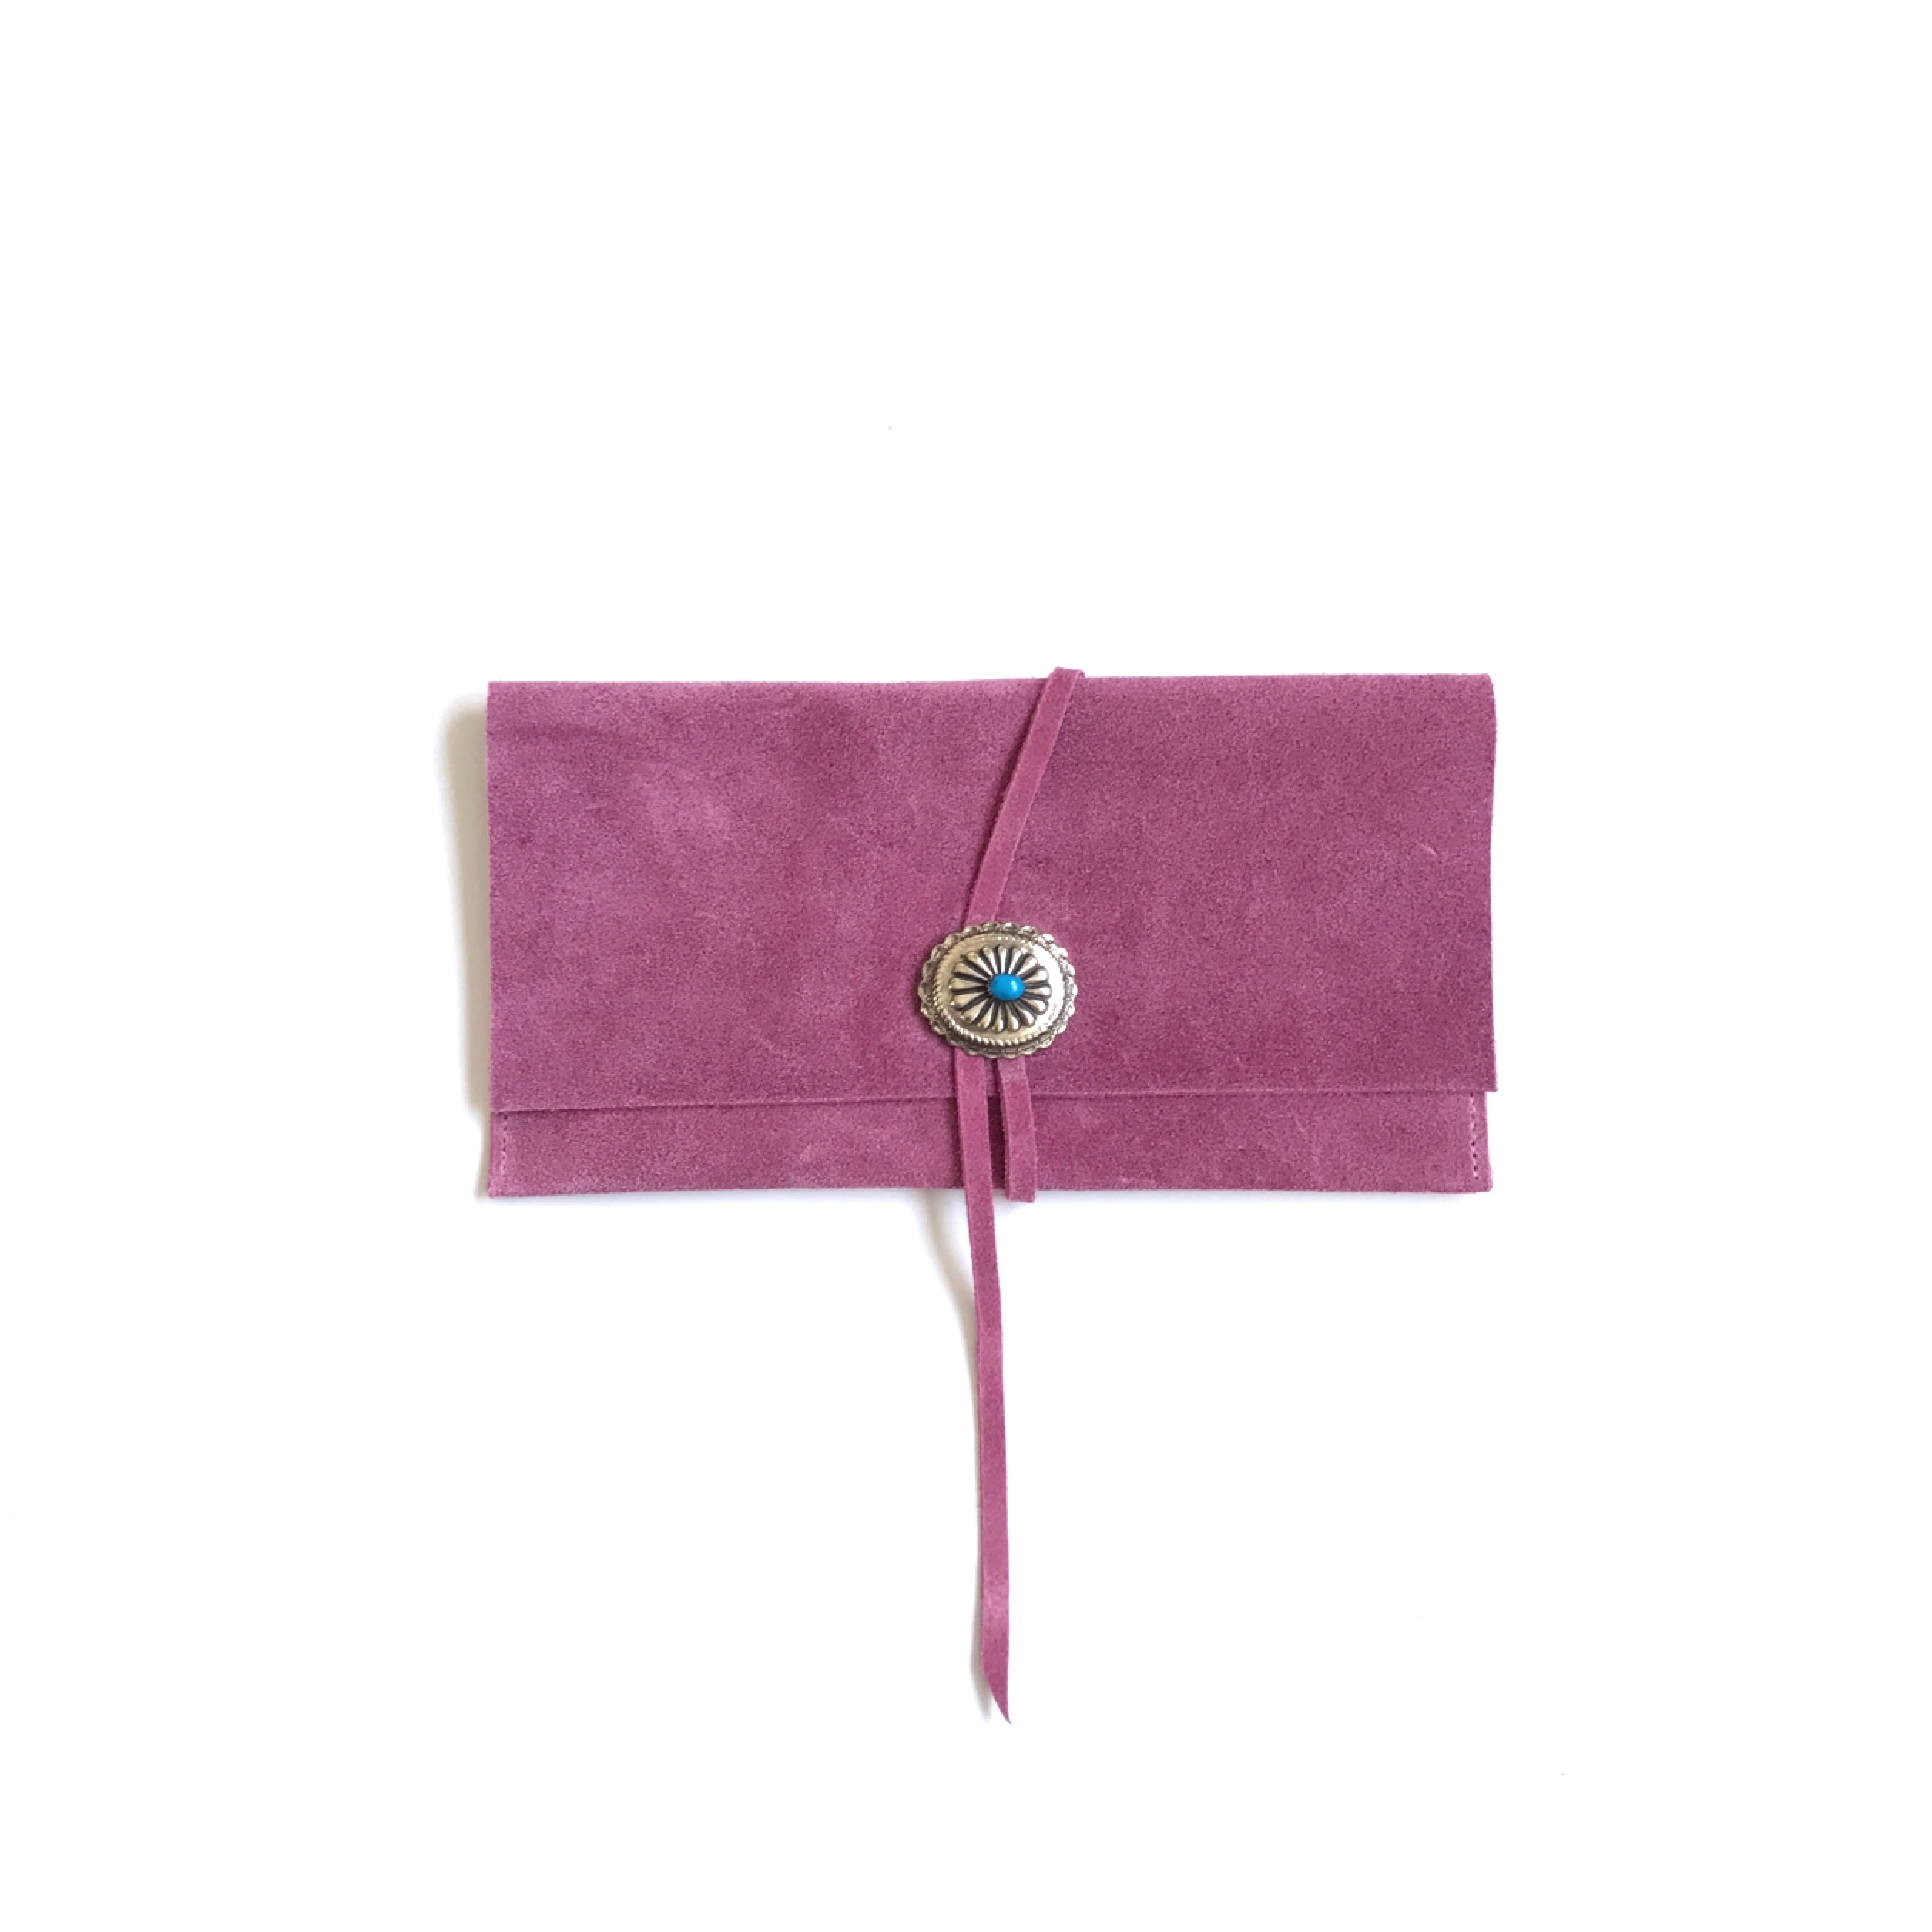 Sunglasses Case -rose pink-